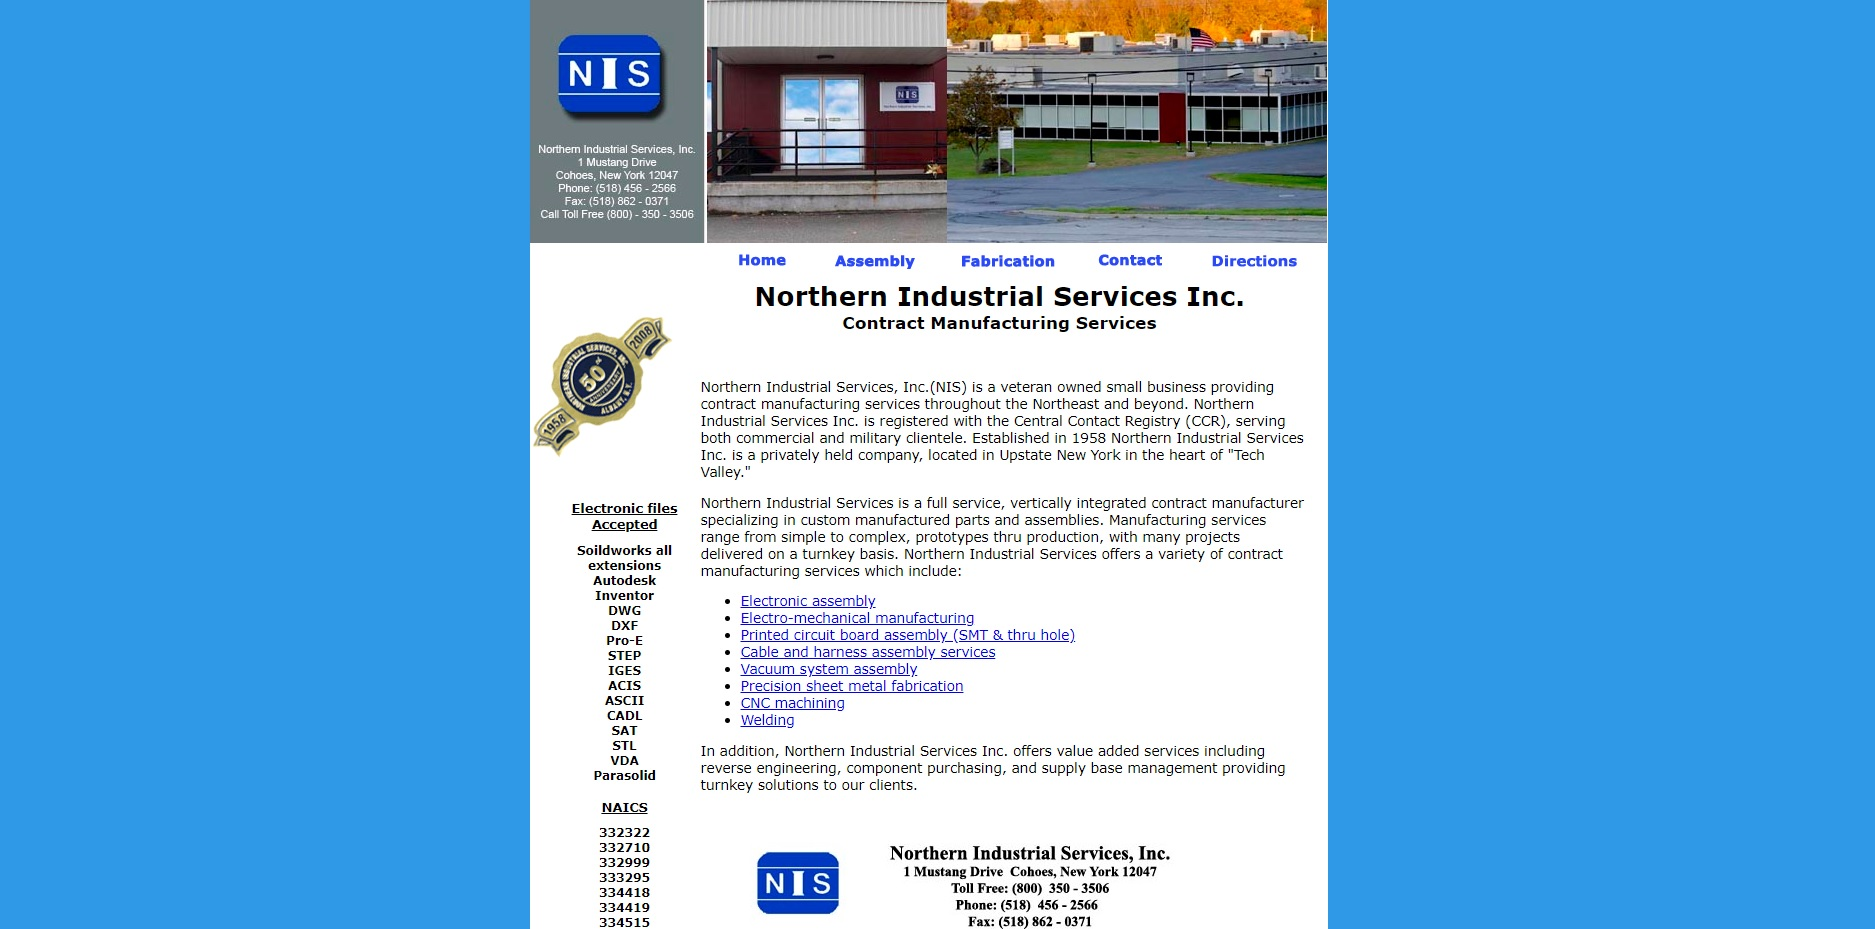 Northern Industrial Services, Inc.